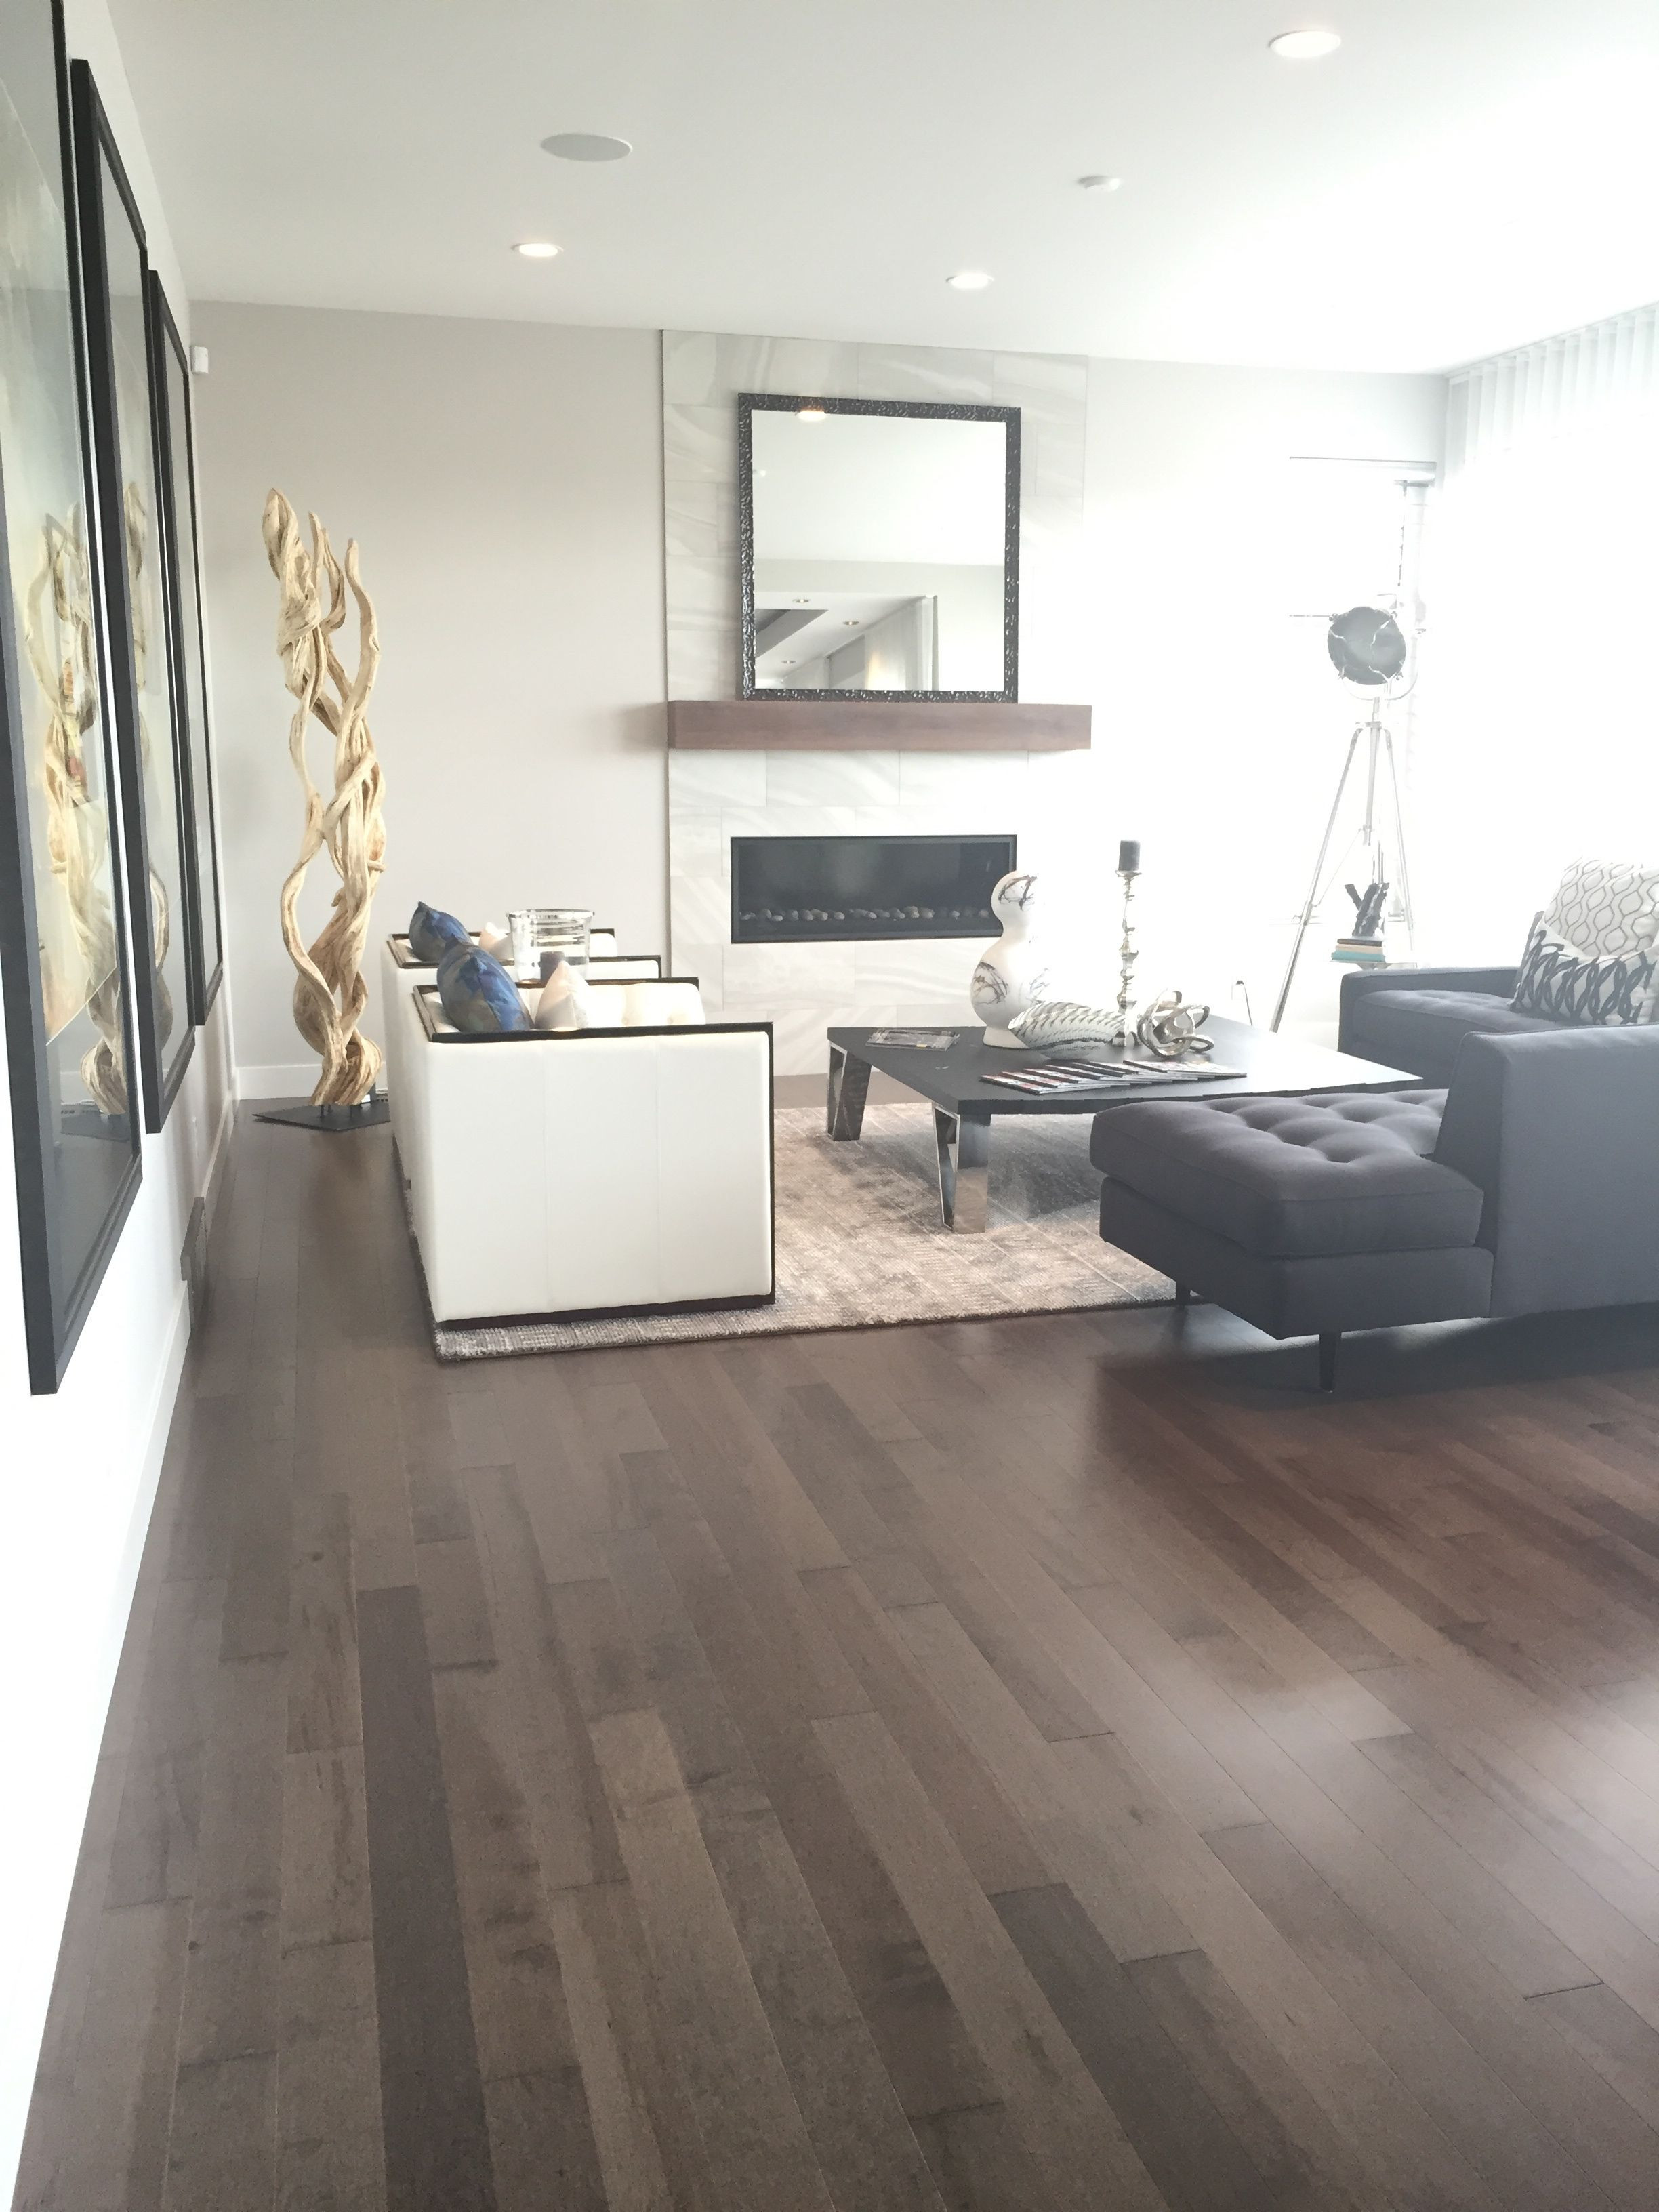 27 Trendy Hardwood Floor Refinishing Denver 2021 free download hardwood floor refinishing denver of smoky grey essential hard maple tradition lauzon hardwood in beautiful living room from the cantata showhome featuring lauzons smokey grey hard maple har